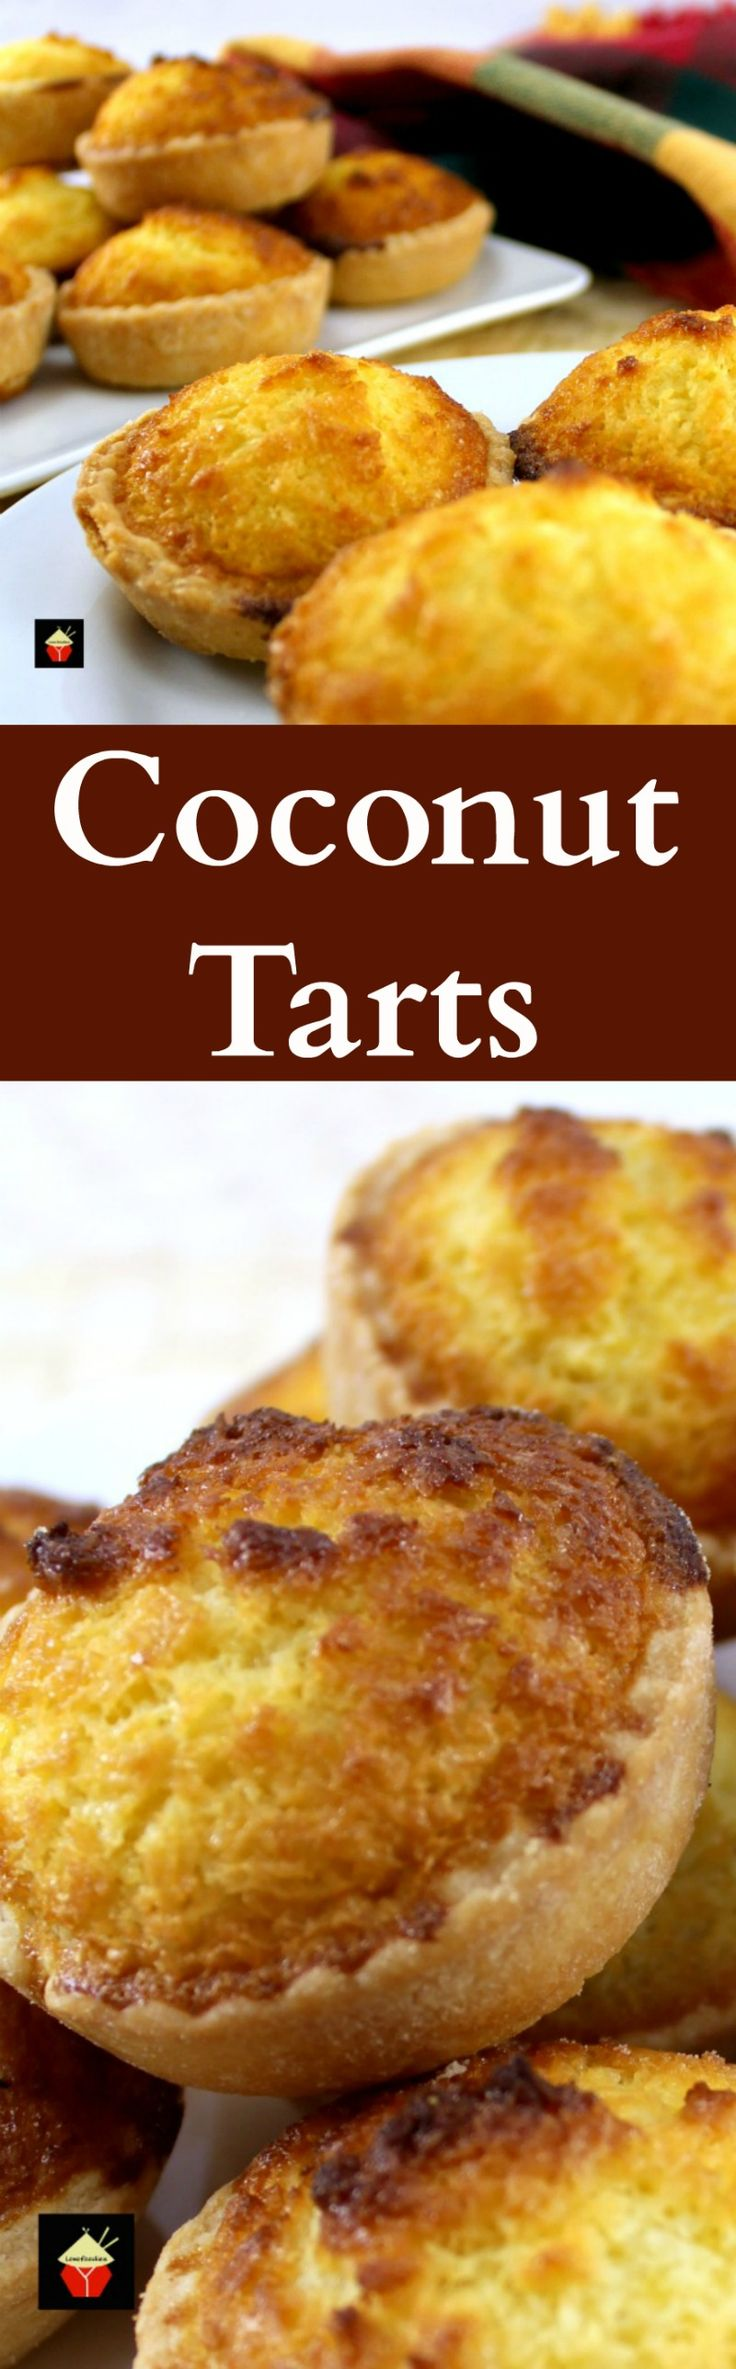 Coconut Tarts! These are a wonderful little tart, filled with a moist coconut egg custard filling. Great for the family and if you're making these for a party, be sure to make plenty! Freezer friendly too! | Lovefoodies.com #Chinese